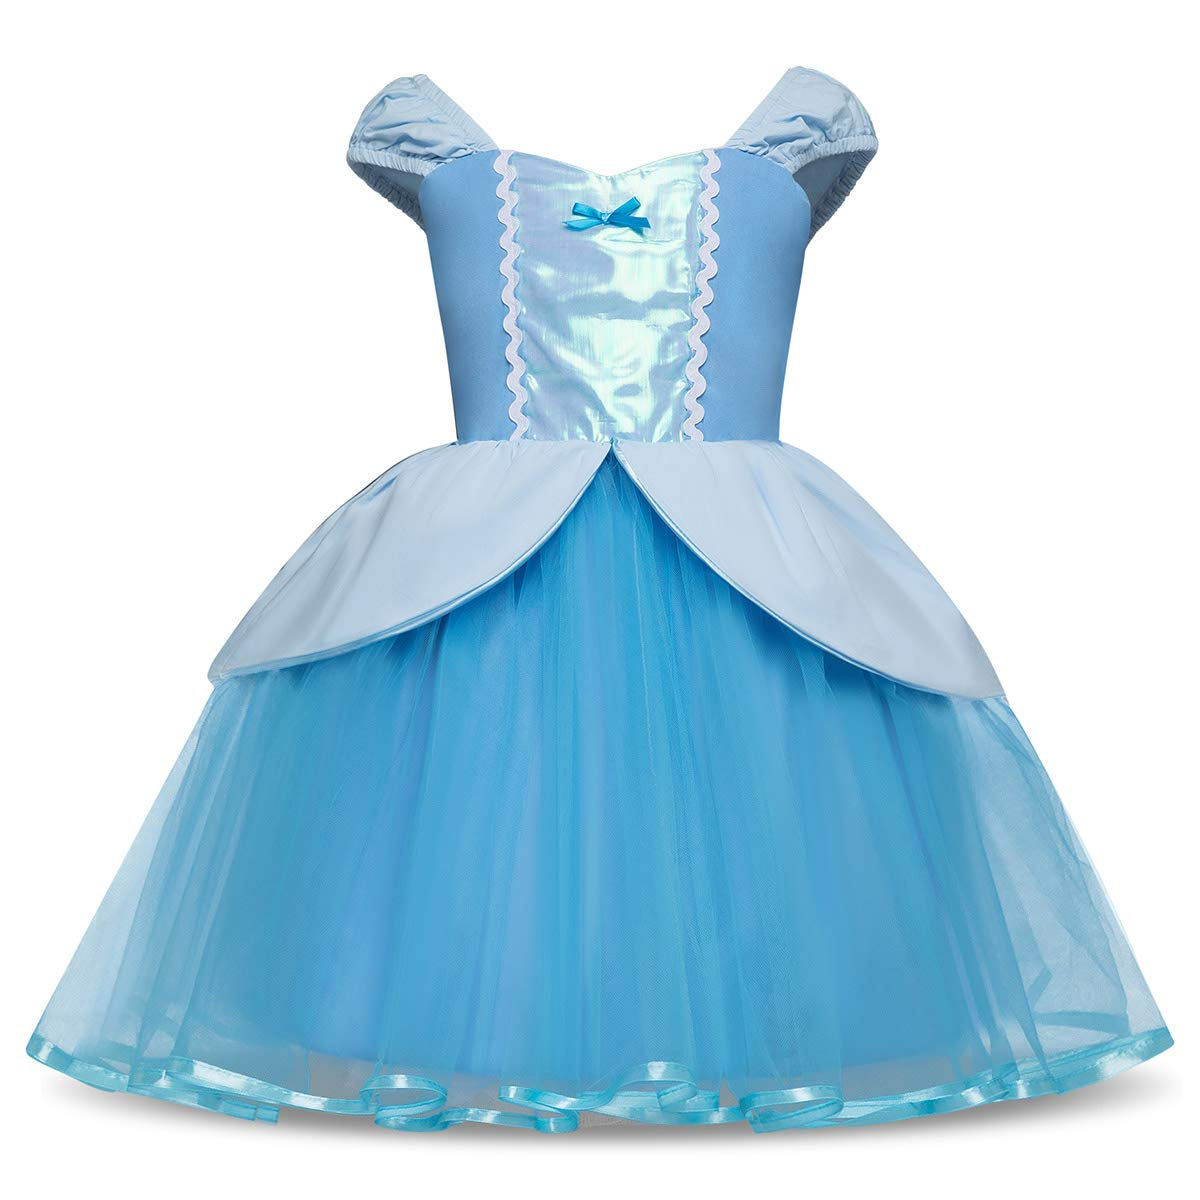 Toddler Baby Girls Princess Costume Dress Up for Birthday Party Christmas Beauty Pageant Dance and Daily Wear